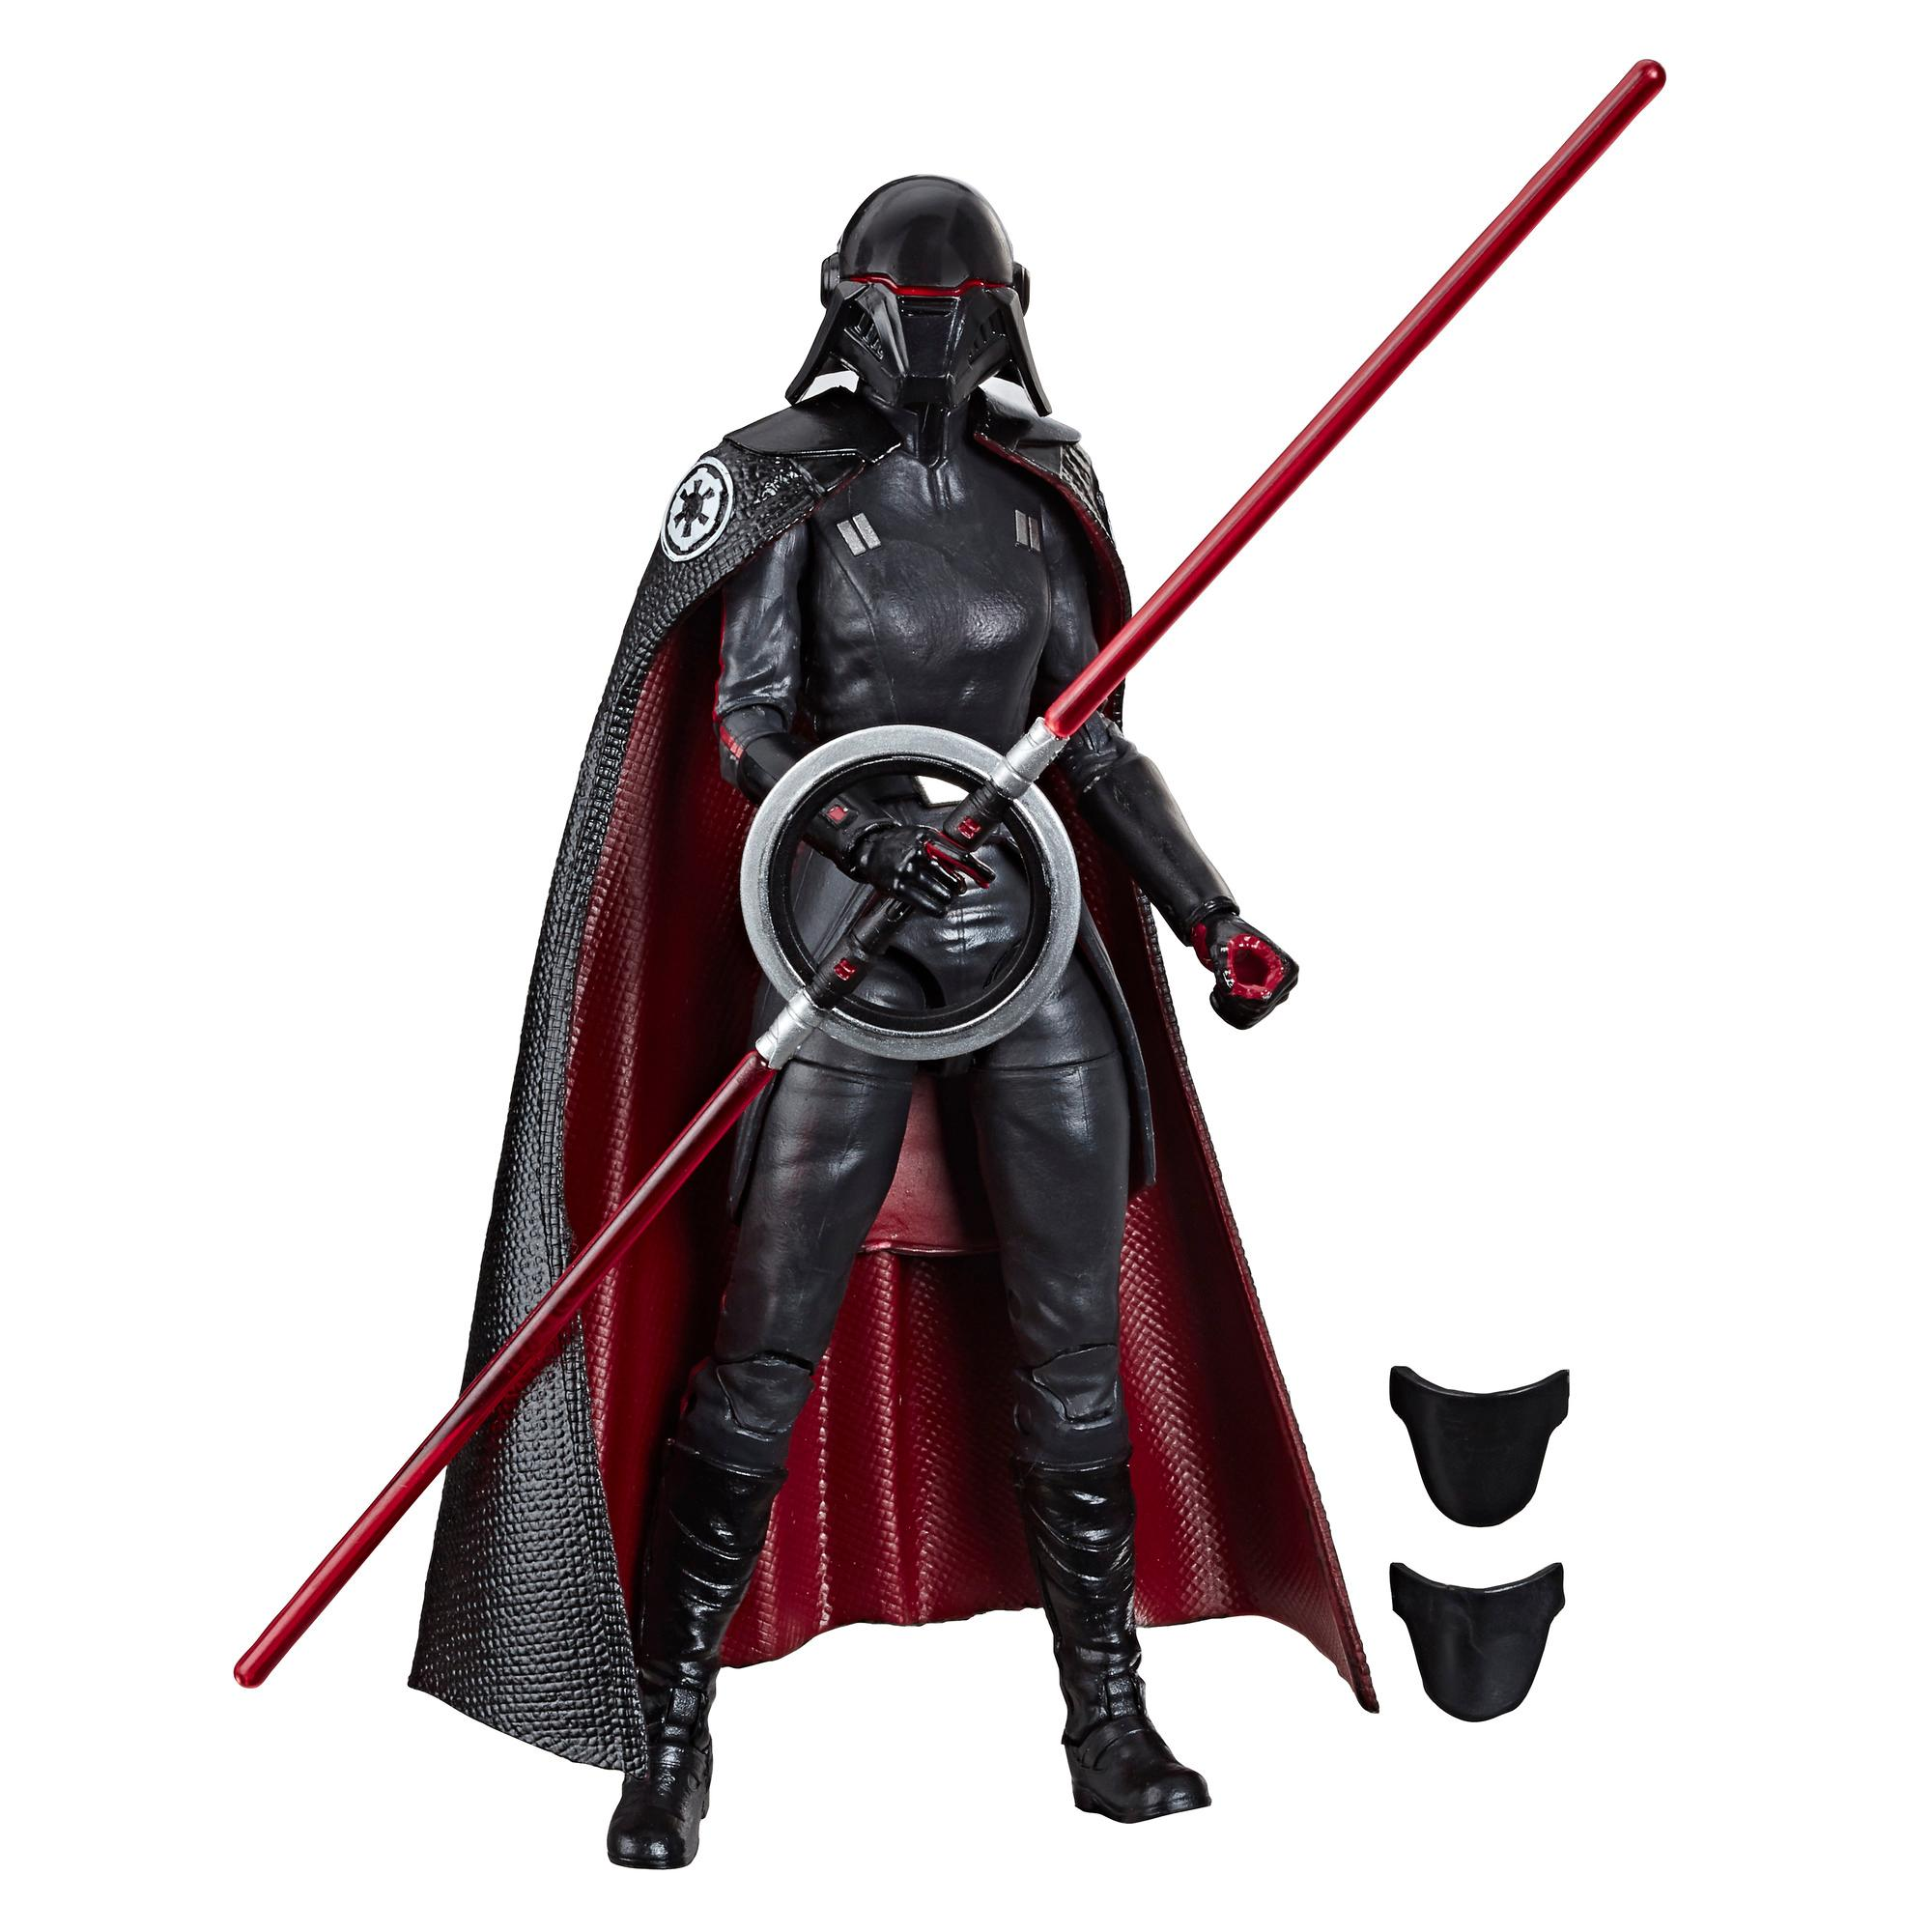 Star Wars The Black Series Second Sister Inquisitor Toy 6-inch Scale Star Wars Jedi: Fallen Order Collectible Figure